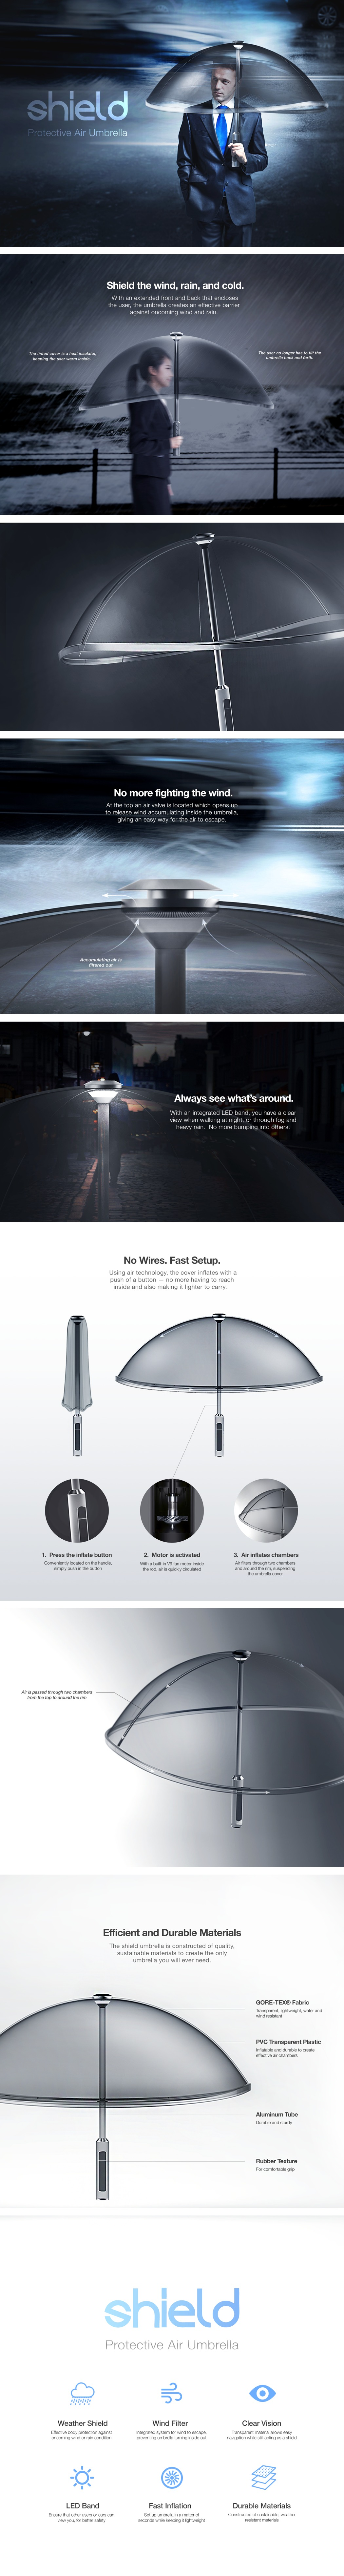 shielf_air_umbrella_01